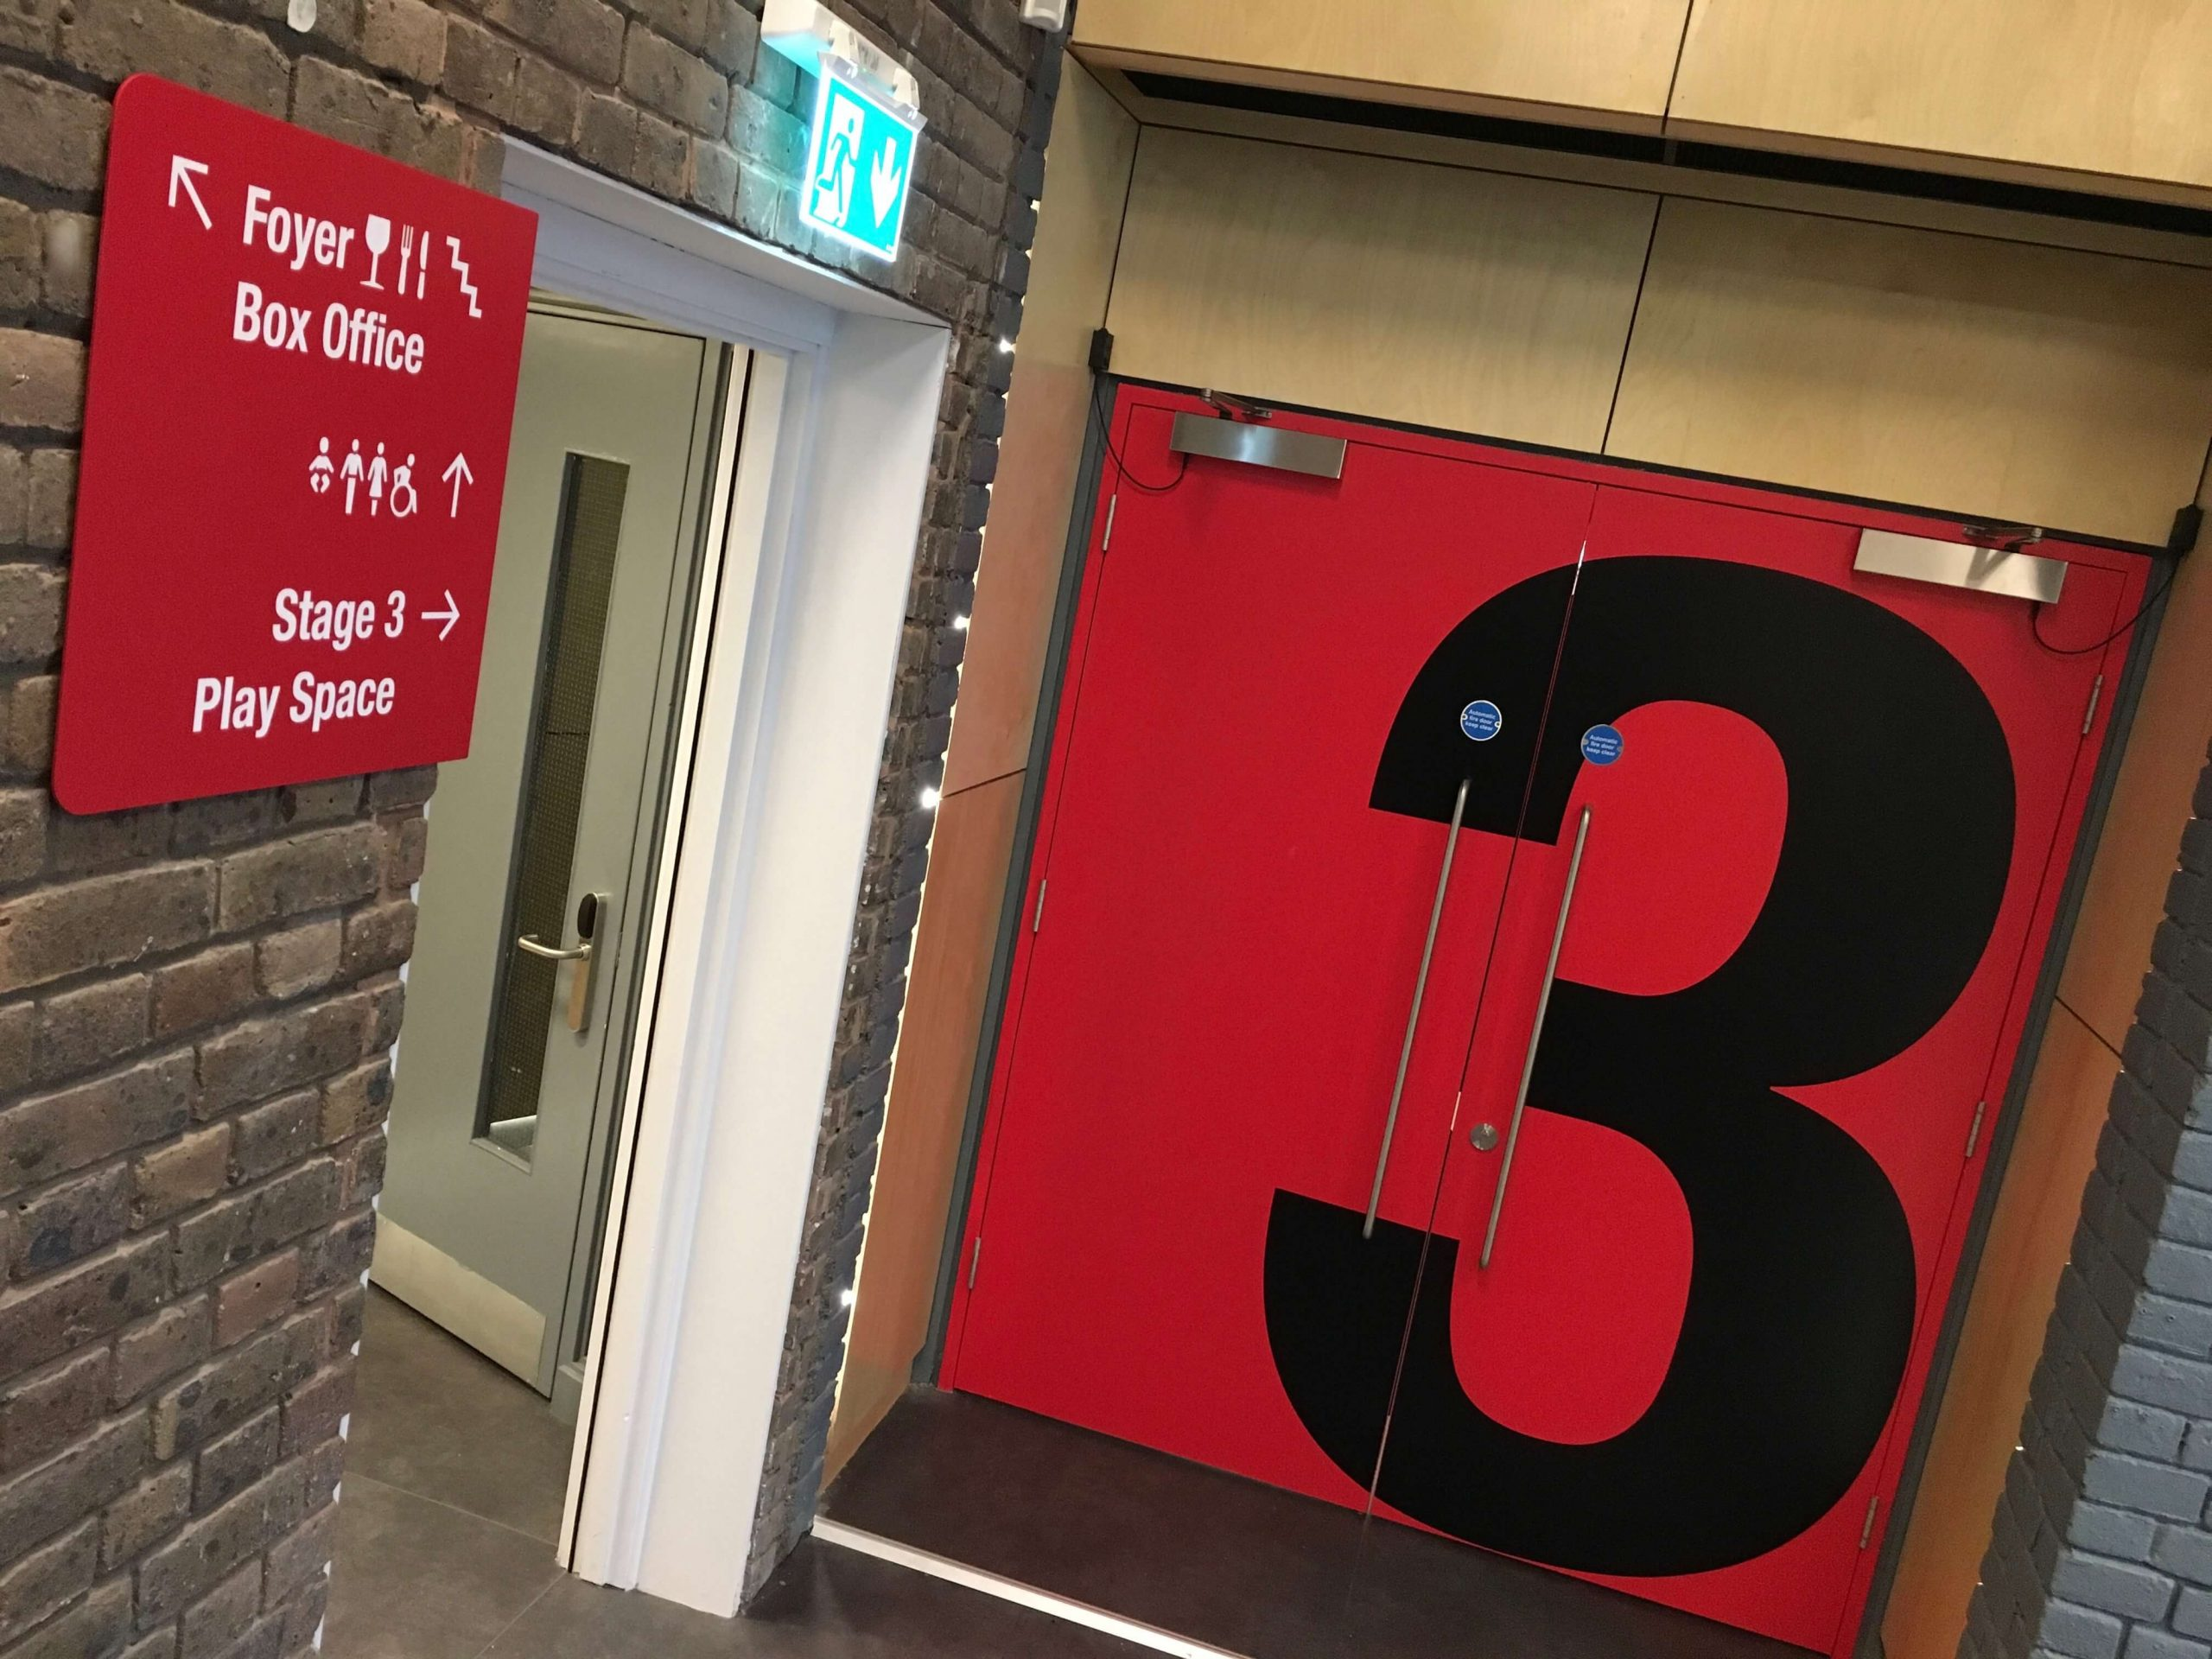 Building wayfinding signage at northern stage